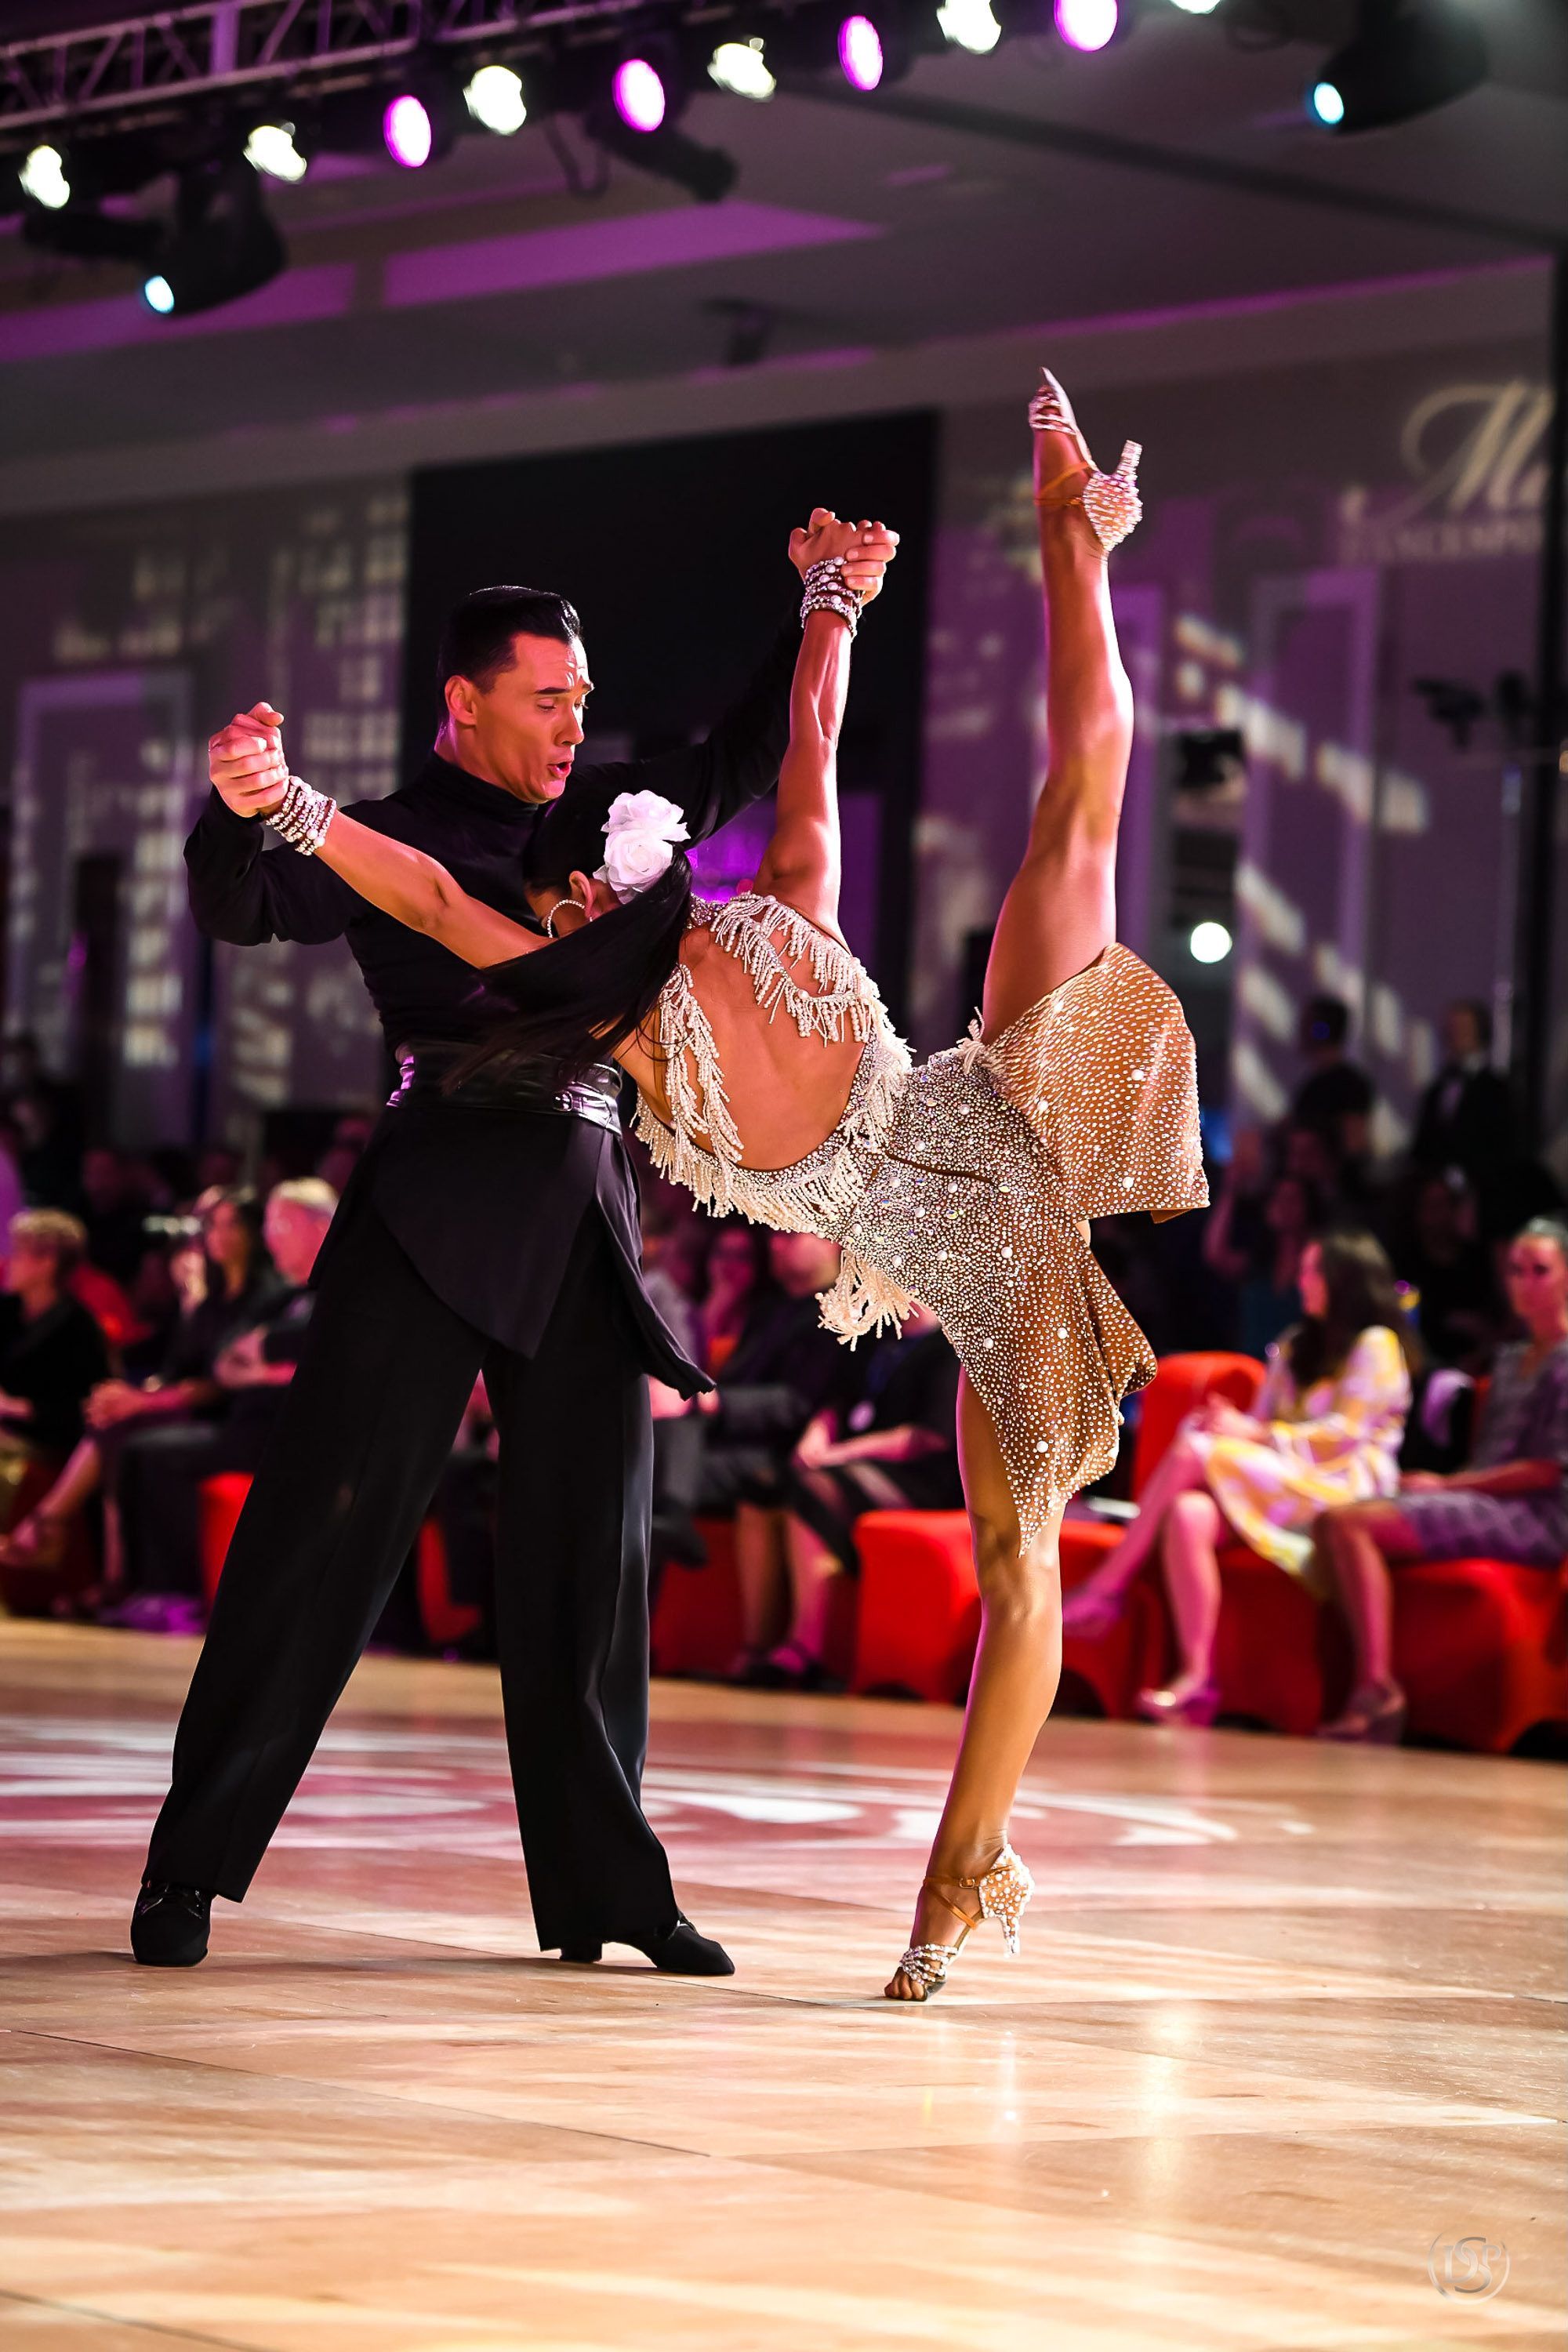 6 Things Aspiring Professional Ballroom Dancers Should Know When Getting Started Dance Teacher